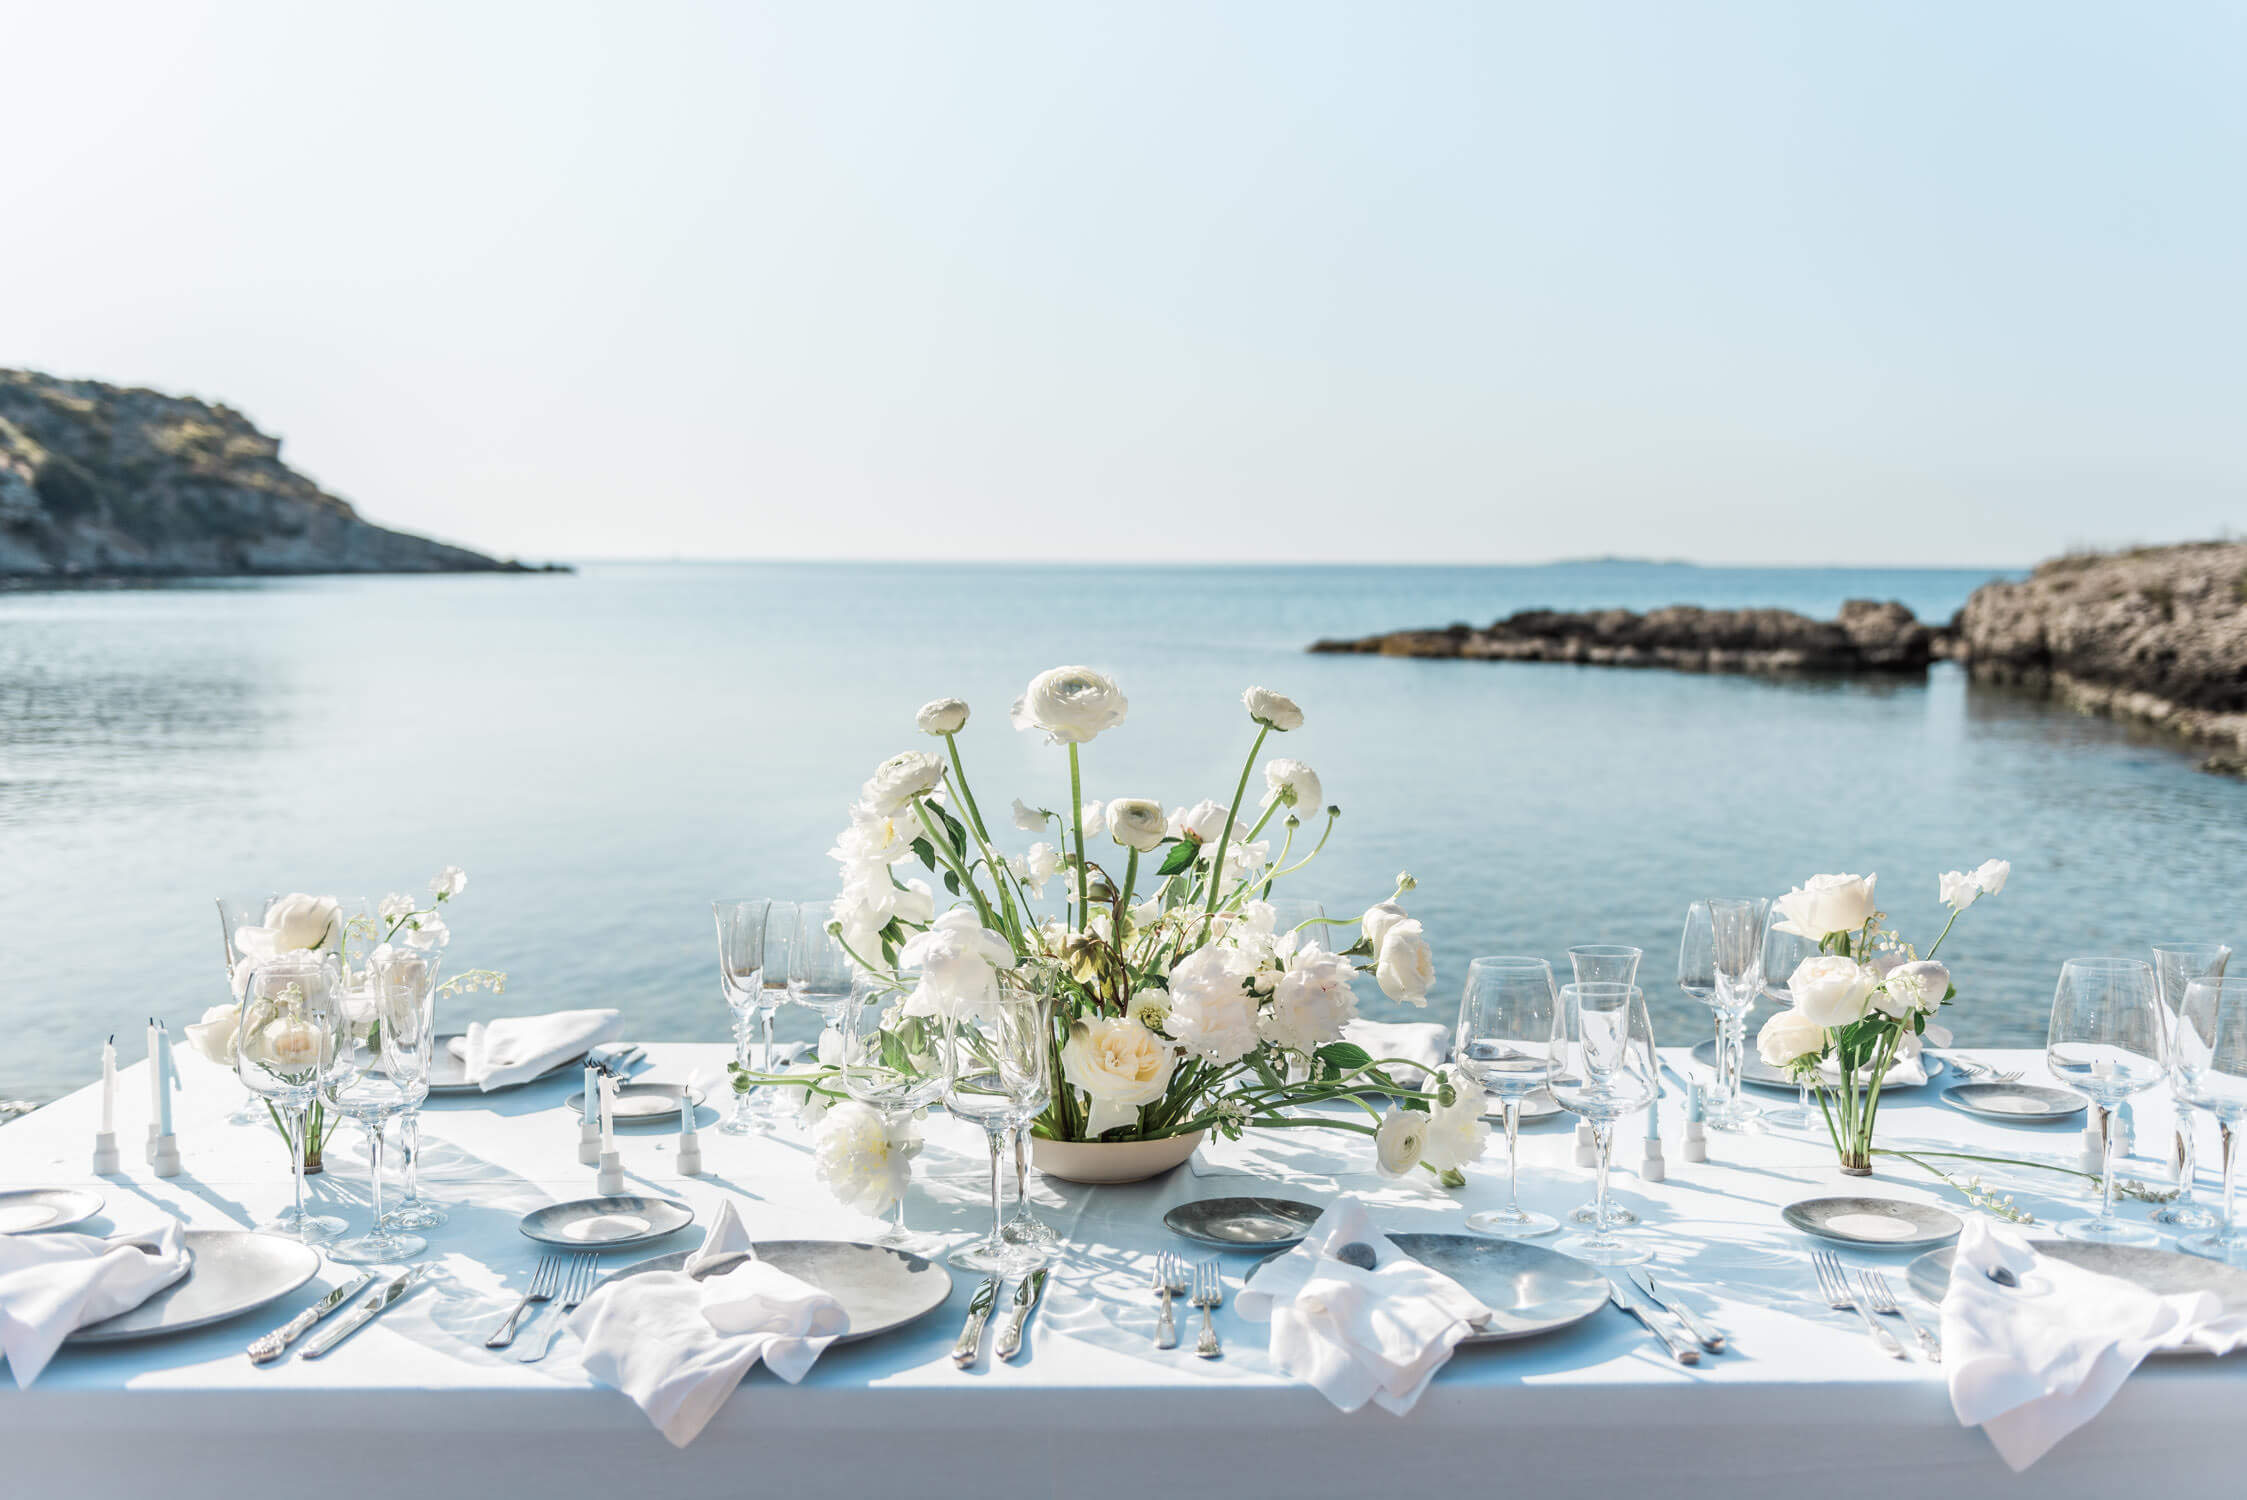 Delicious food is 1 of the reasons to choose Greece for your destination wedding